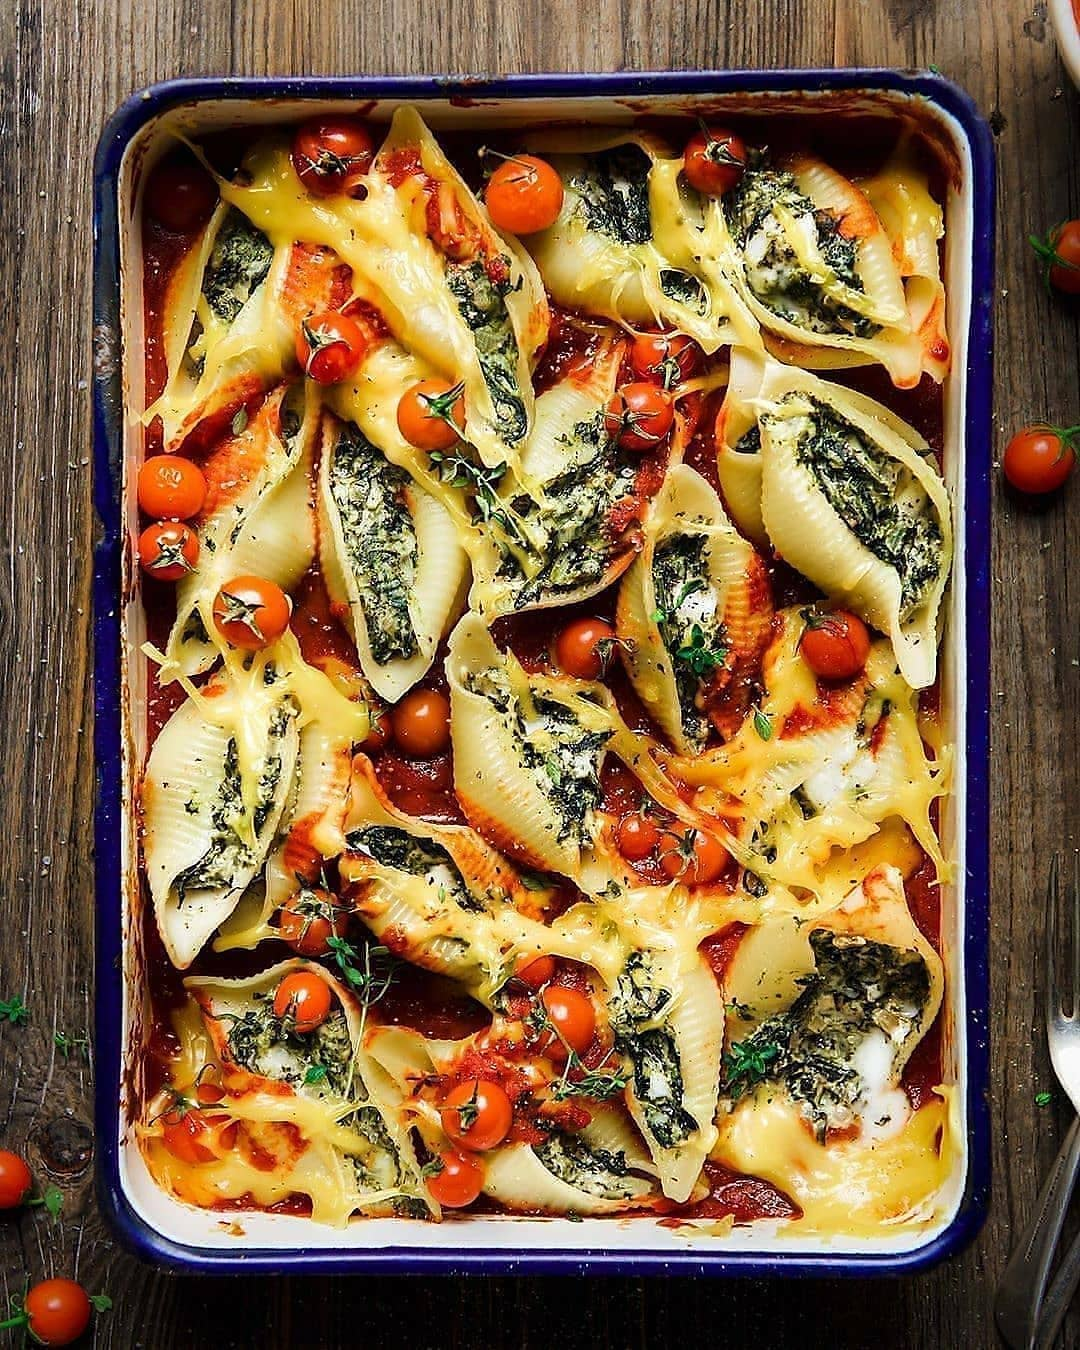 vegan spinach + feta pasta bake with giant pasta shell display image  09cee021